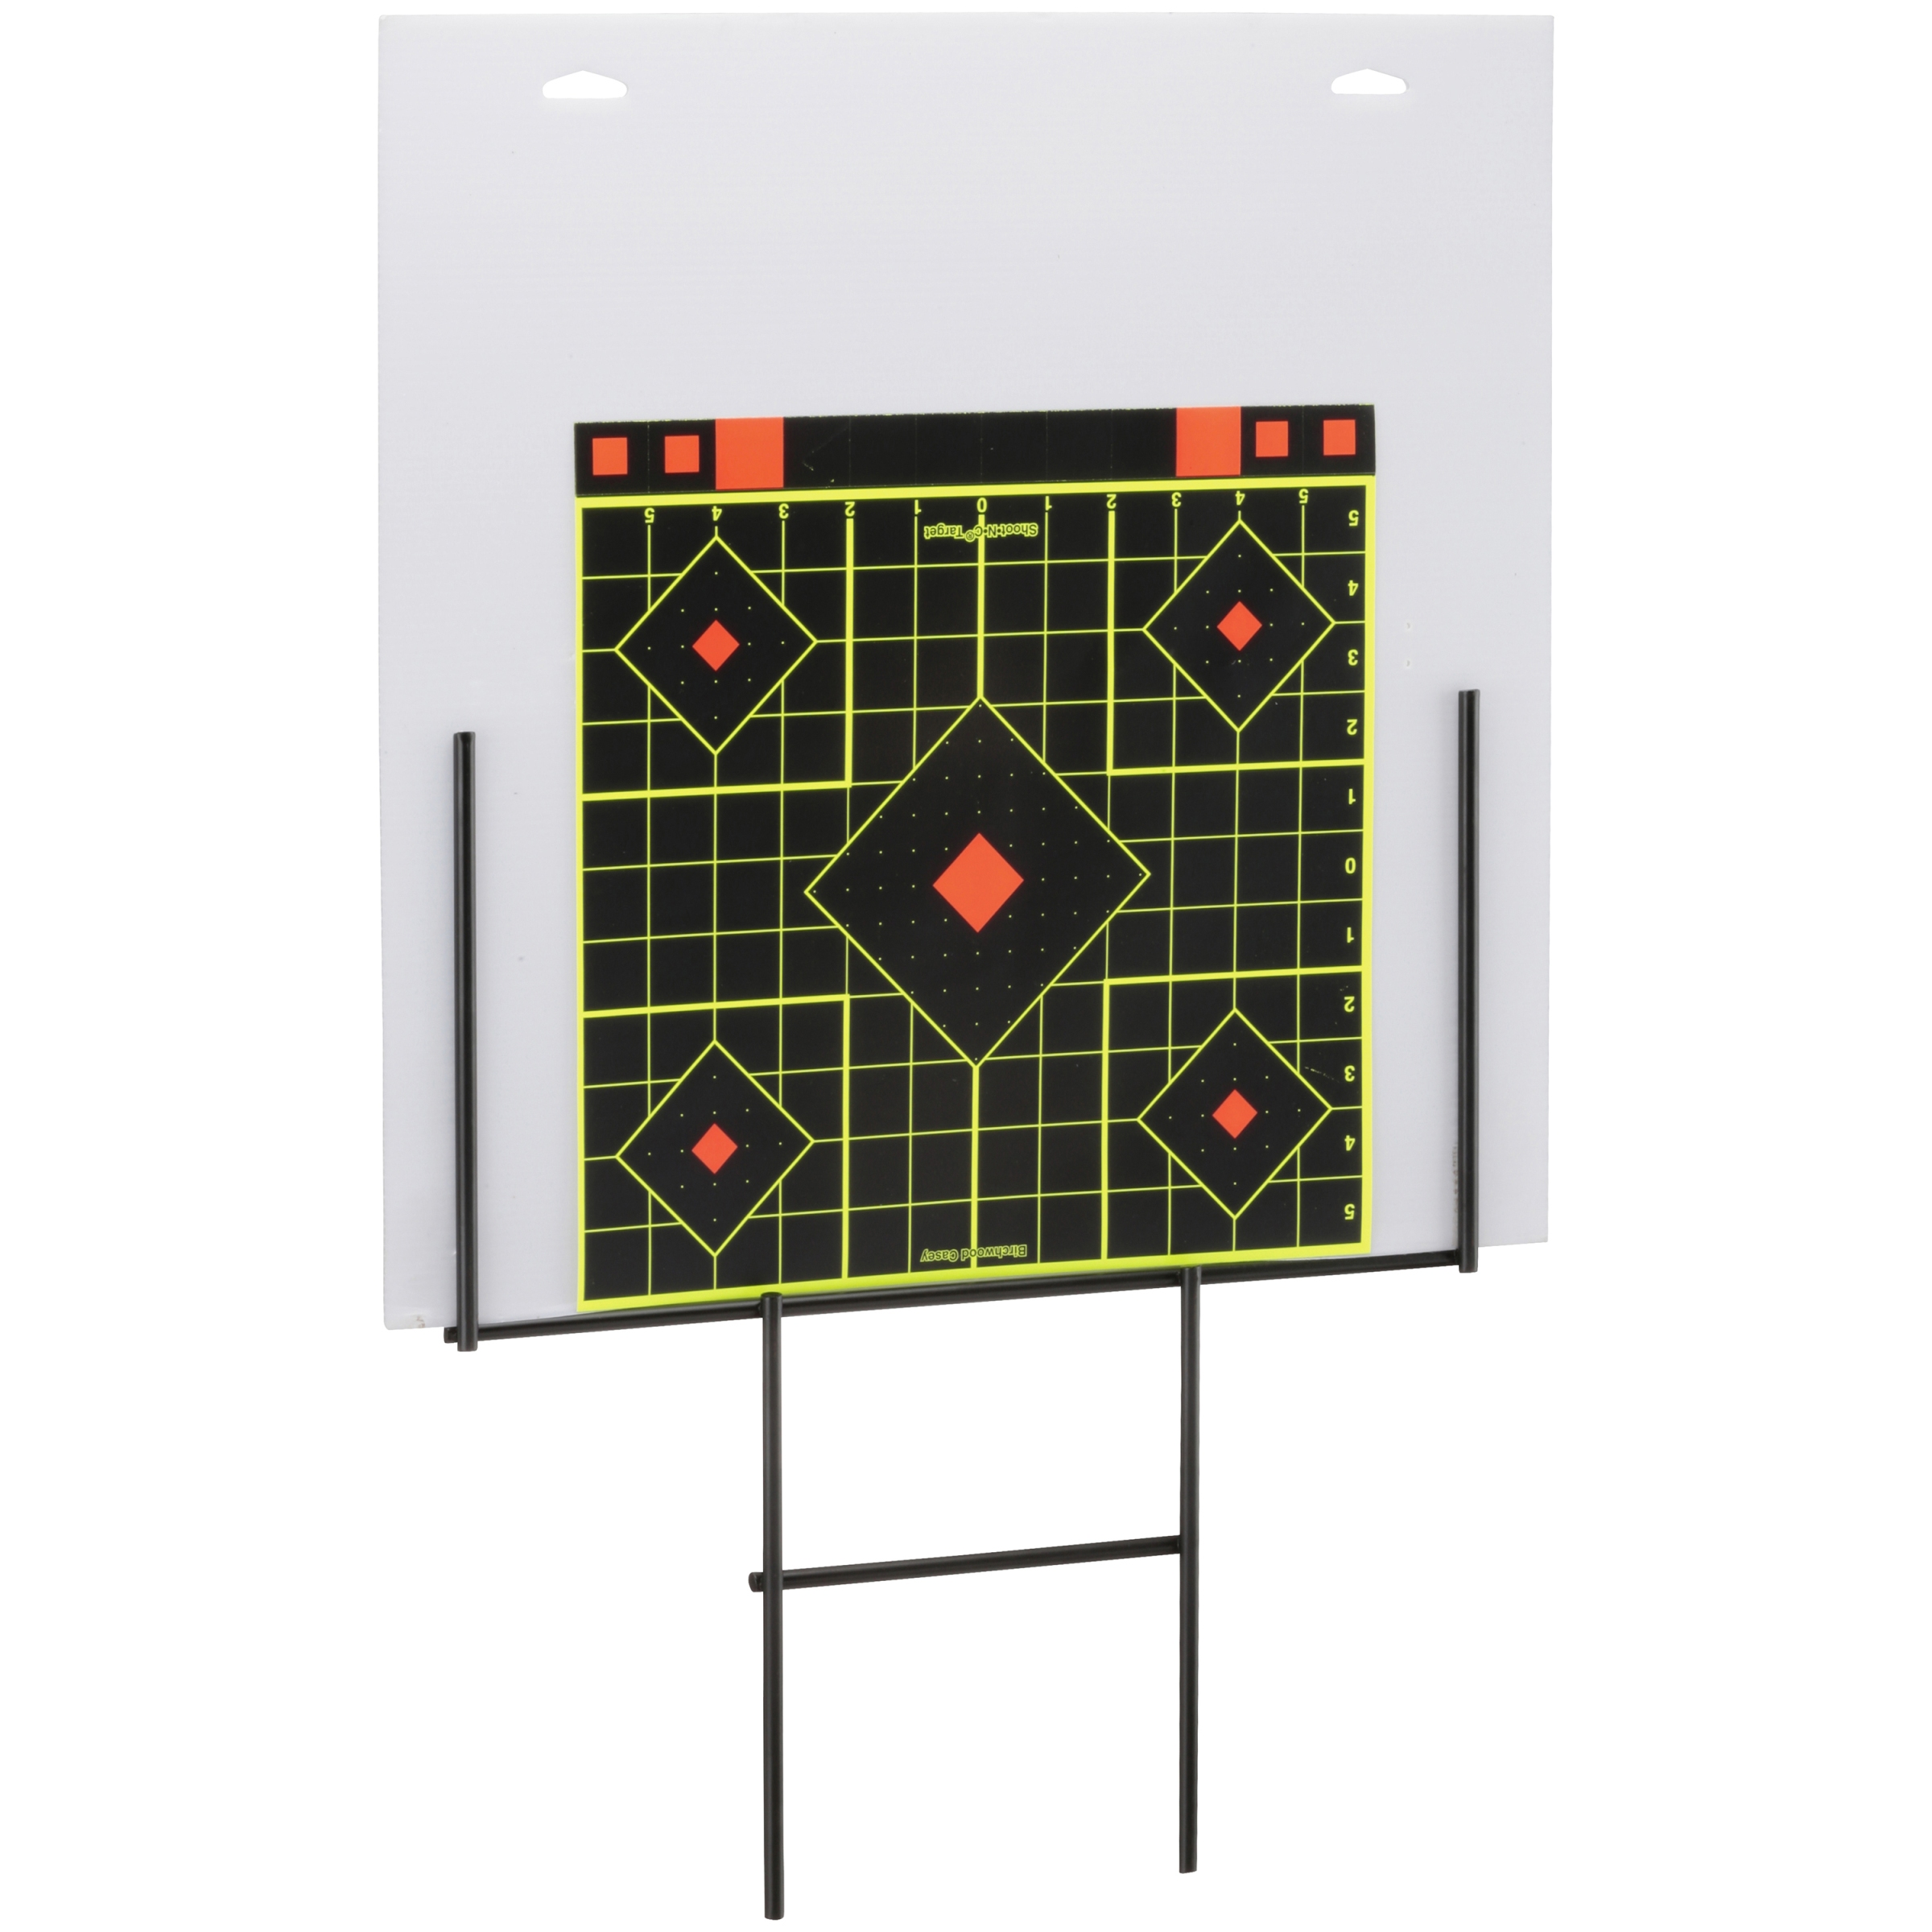 "Birchwood Casey Portable 18"" x 18"" Shooting Range and Targets Kit"